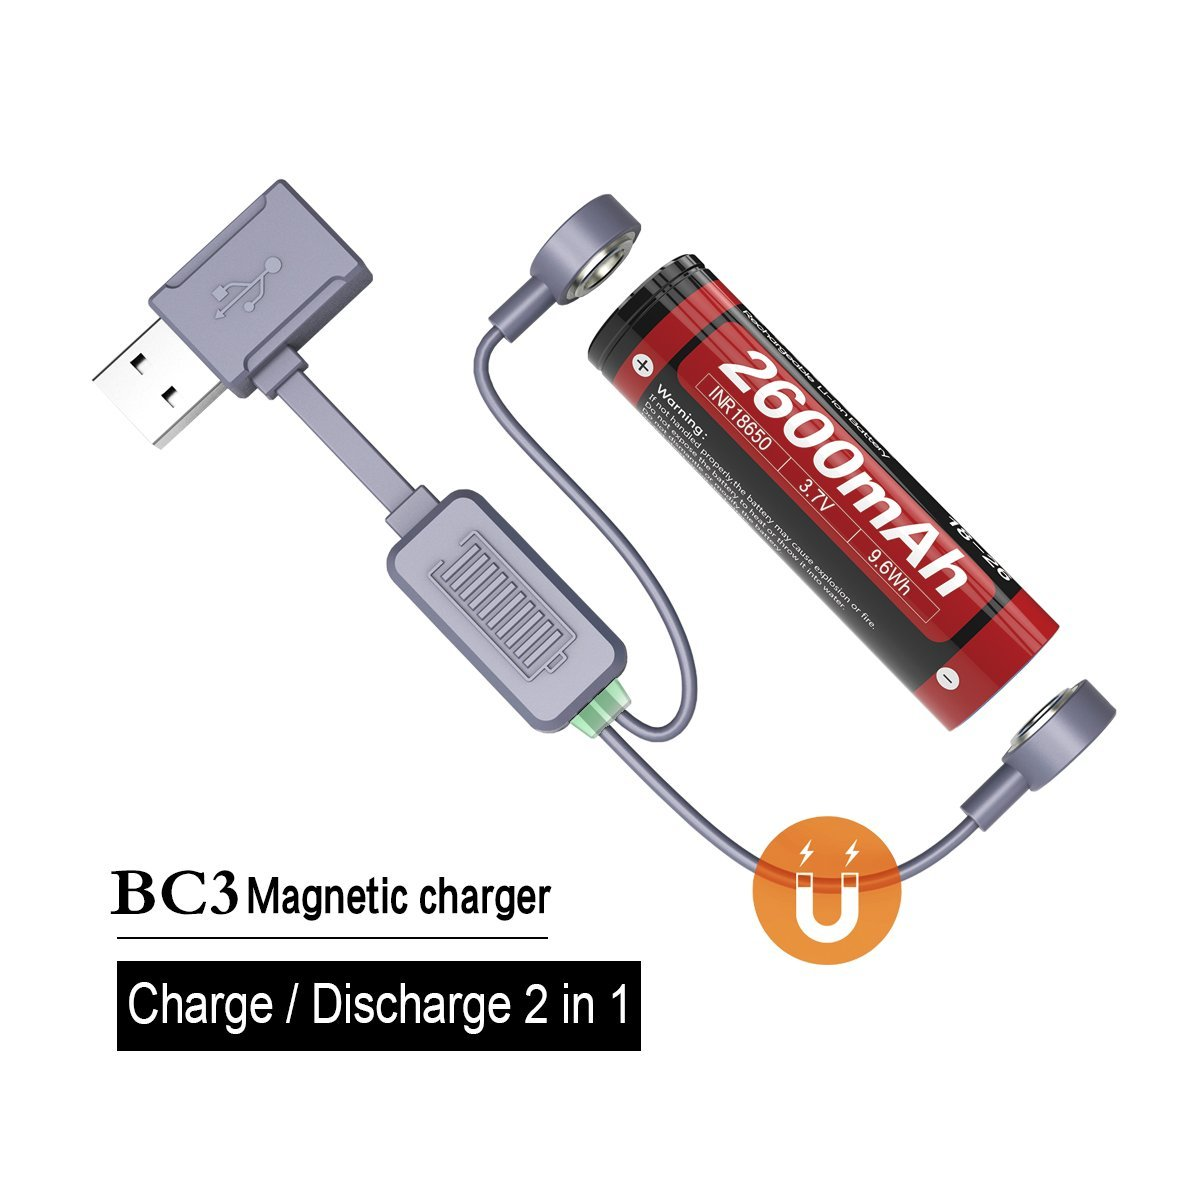 Weltool Magnetic USB Battery Charger for Li-ion Battery - Portable Universal Charger for Travelling, Compatible with 18500 18650 22650 17670 17500 17335 16340 Rechargeable Batteries 71027